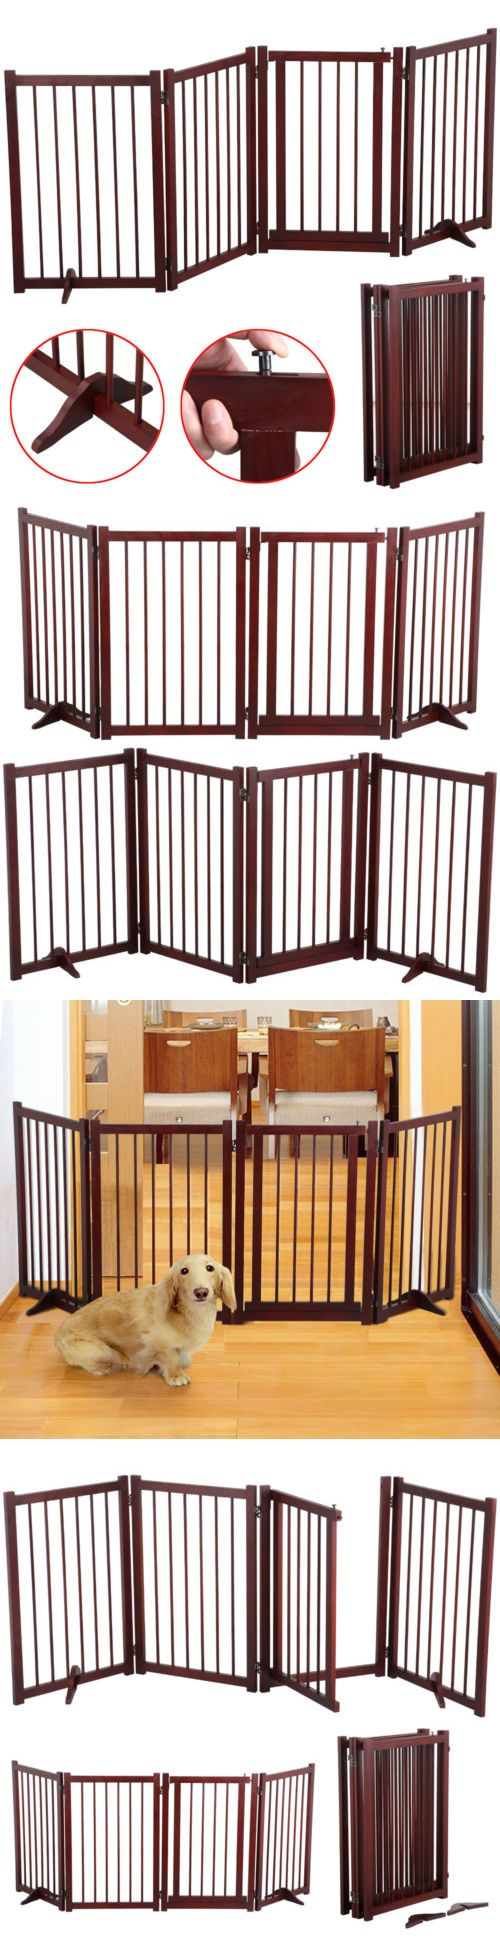 Fences and Exercise Pens 20748: Extra Wide Pet Gate Dog Walk Thru Freestanding Fence Playpen Indoor Wood Safety BUY IT NOW ONLY: $53.99